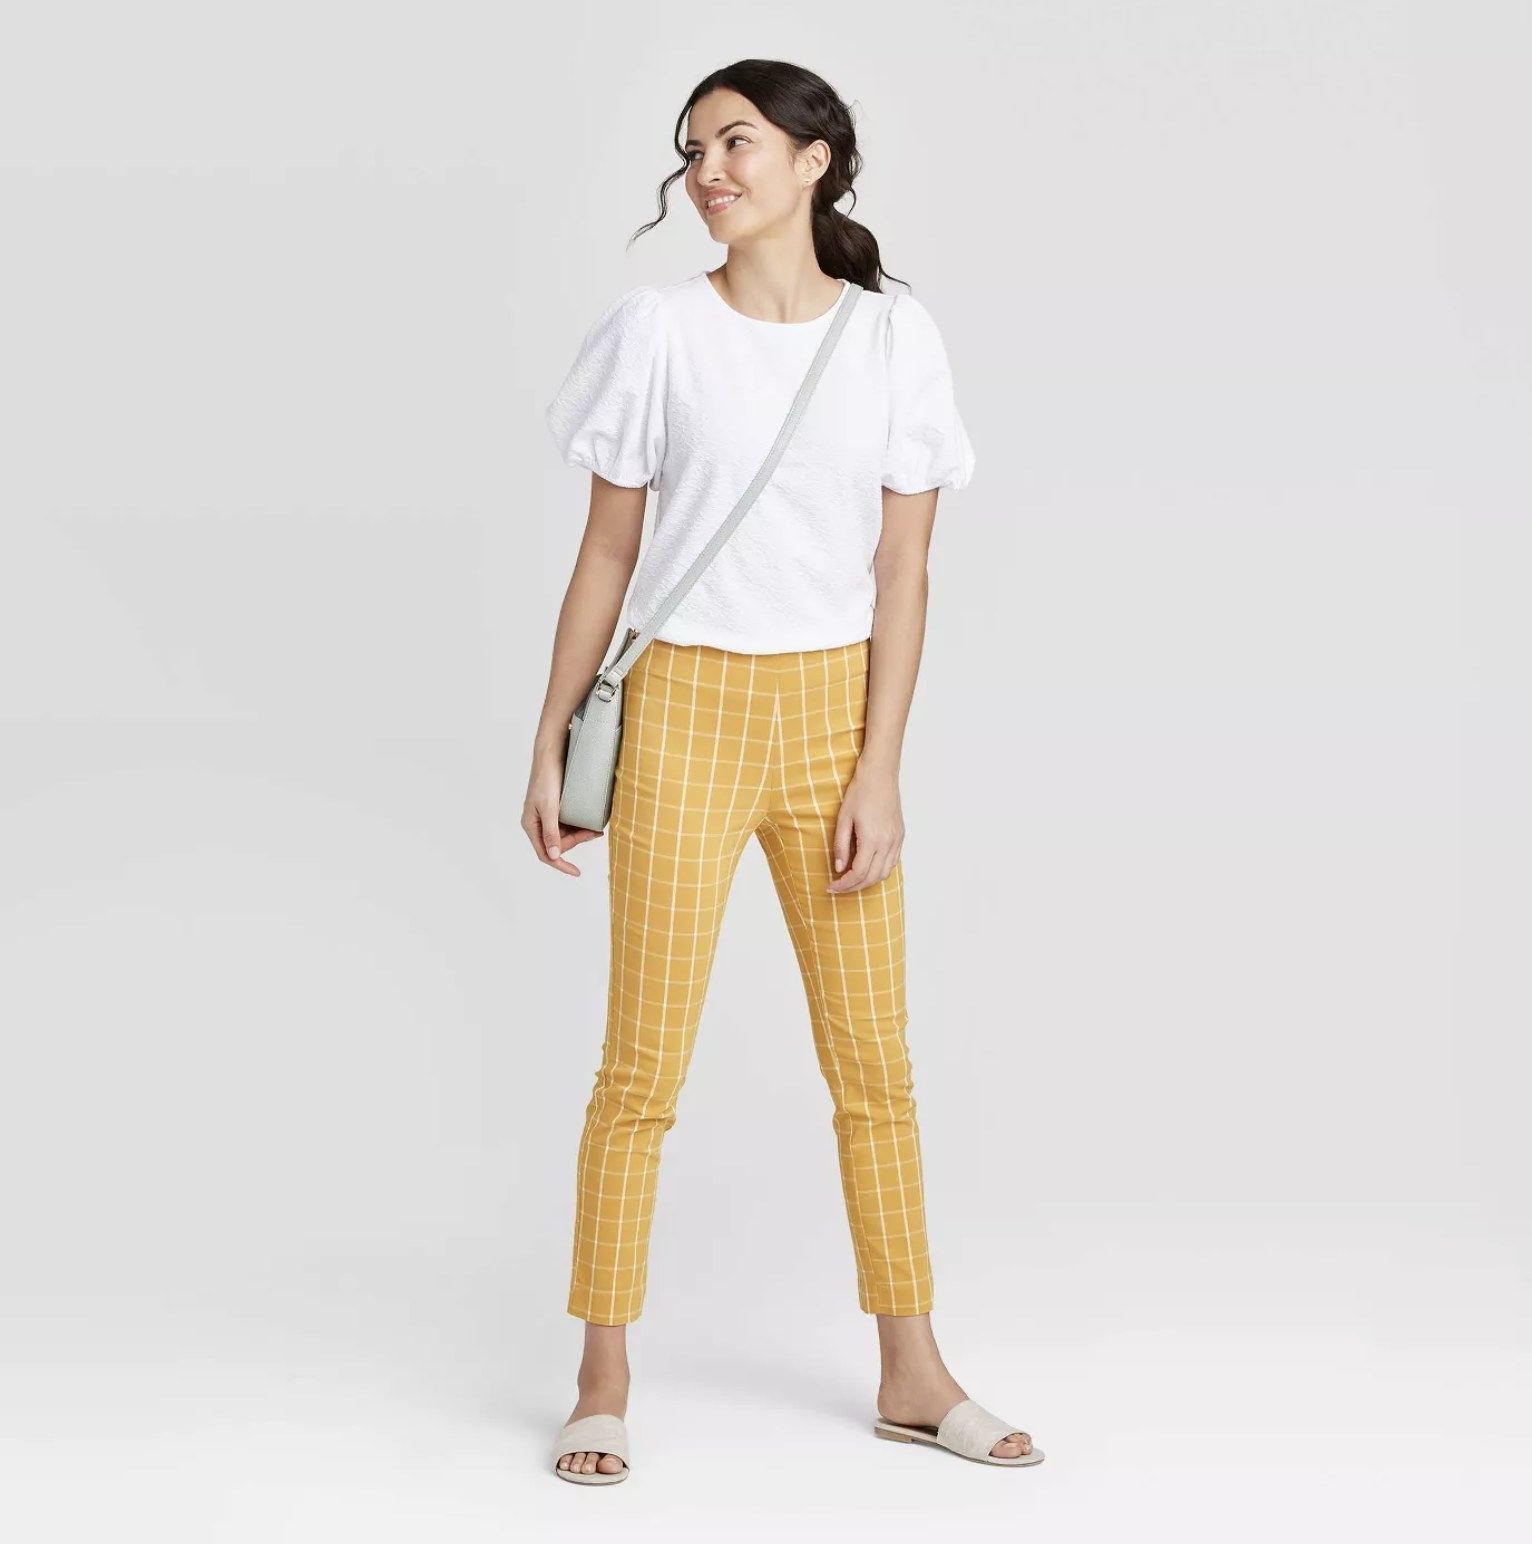 model wearing yellow and white plaid pants